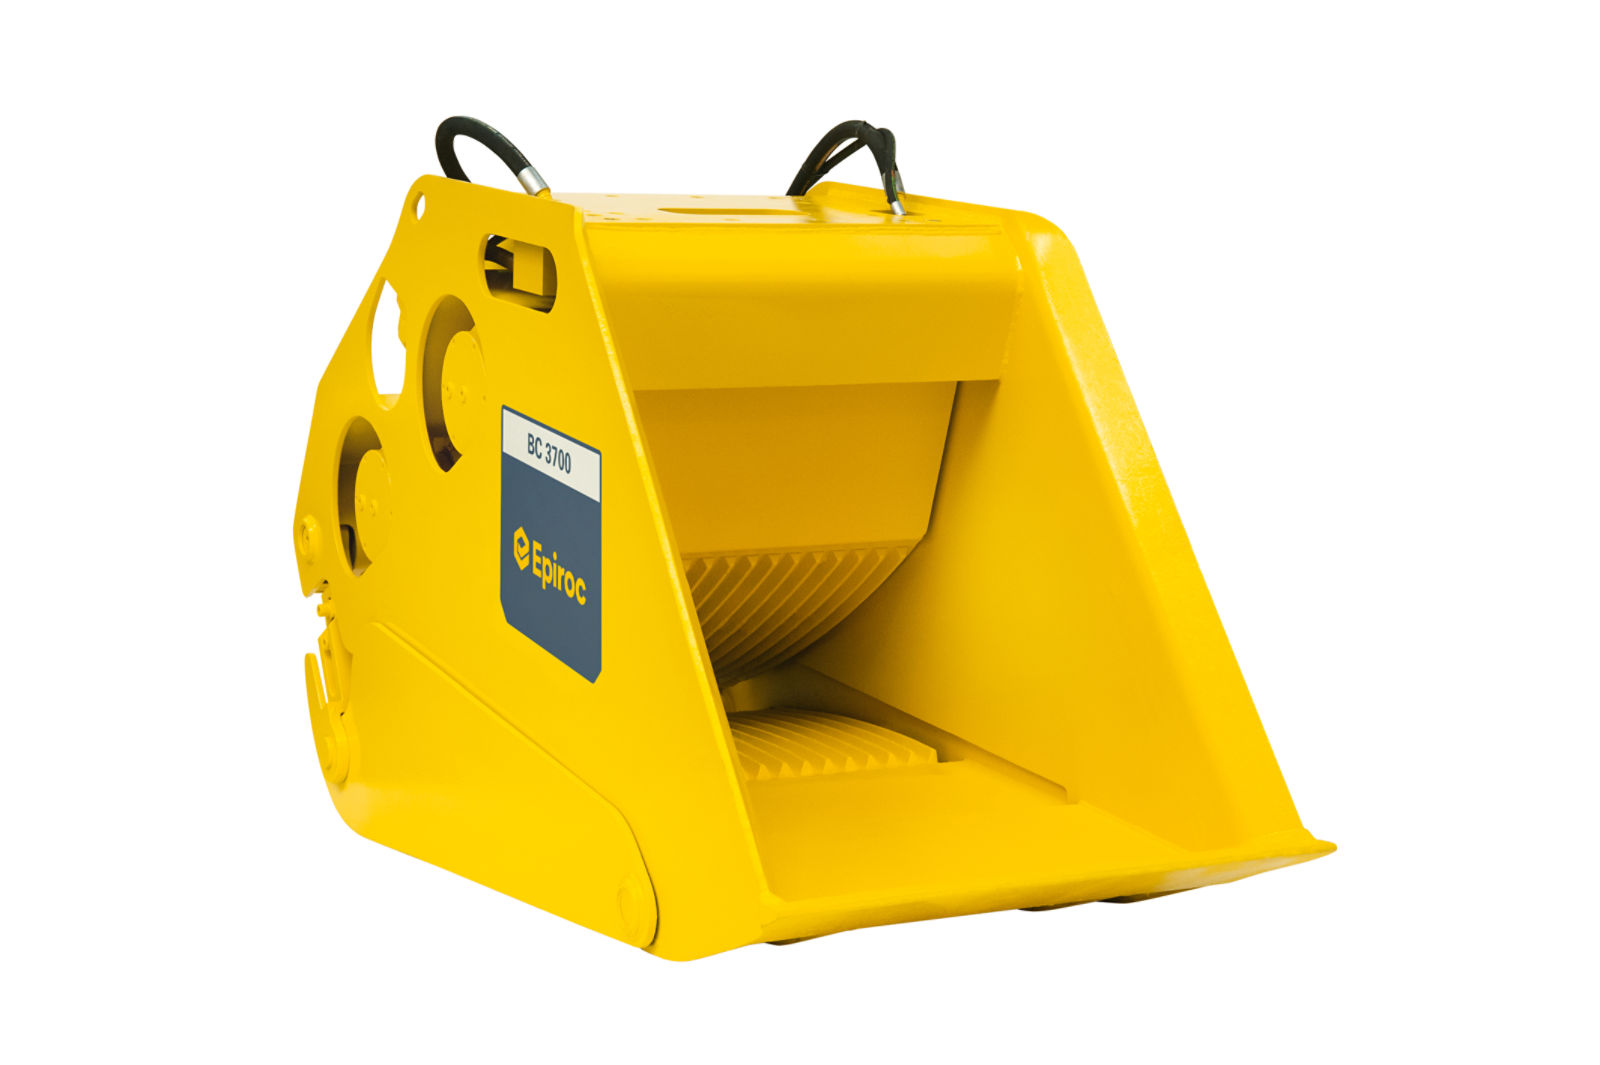 The BC 3700 bucket crusher